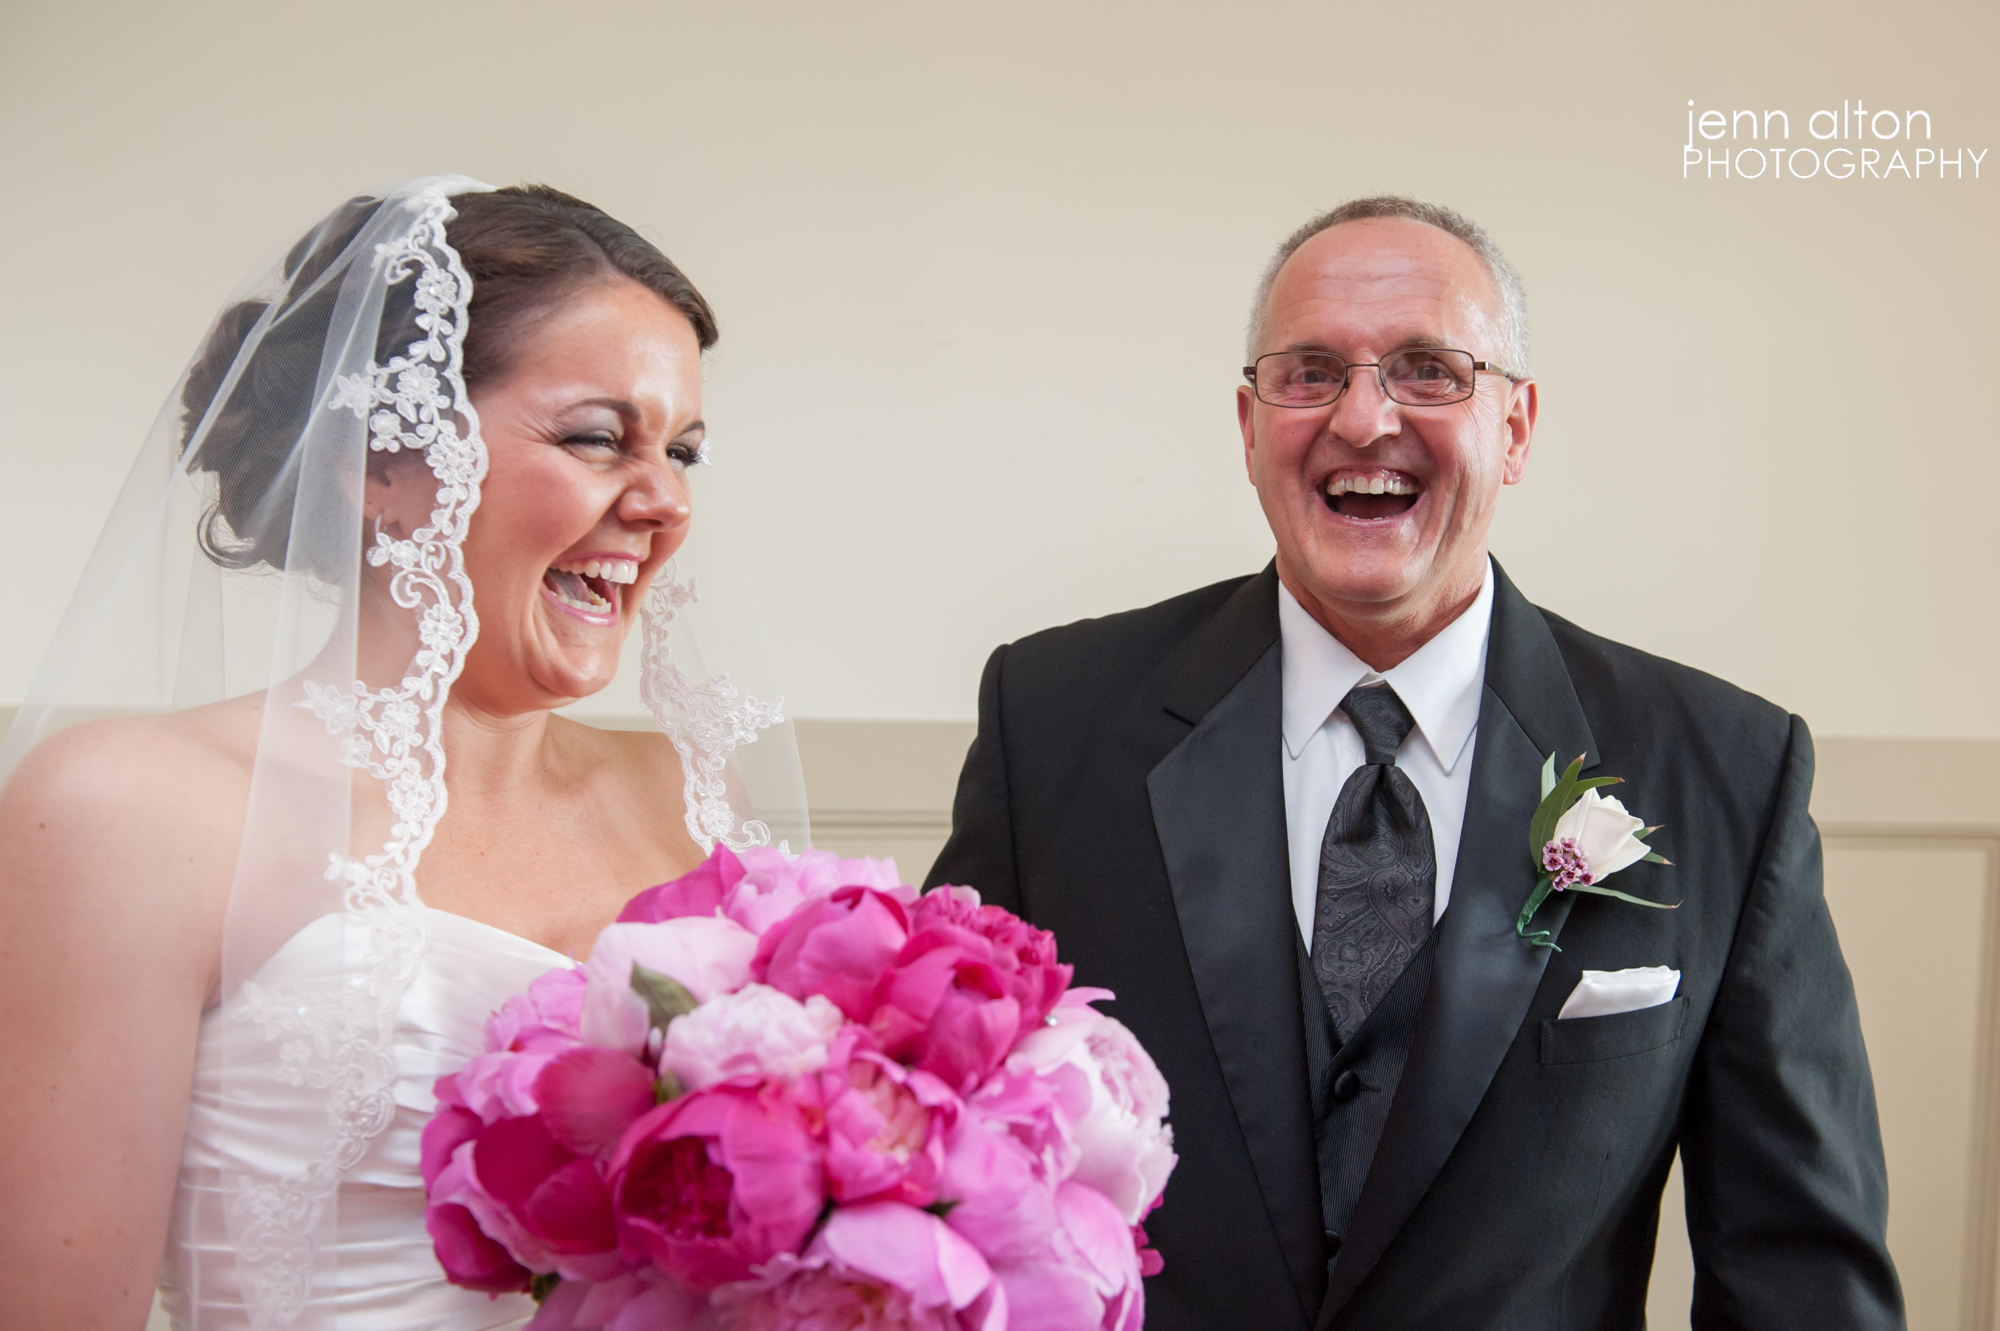 Father seeing bride for the first time on wedding day, Merrimack Valley